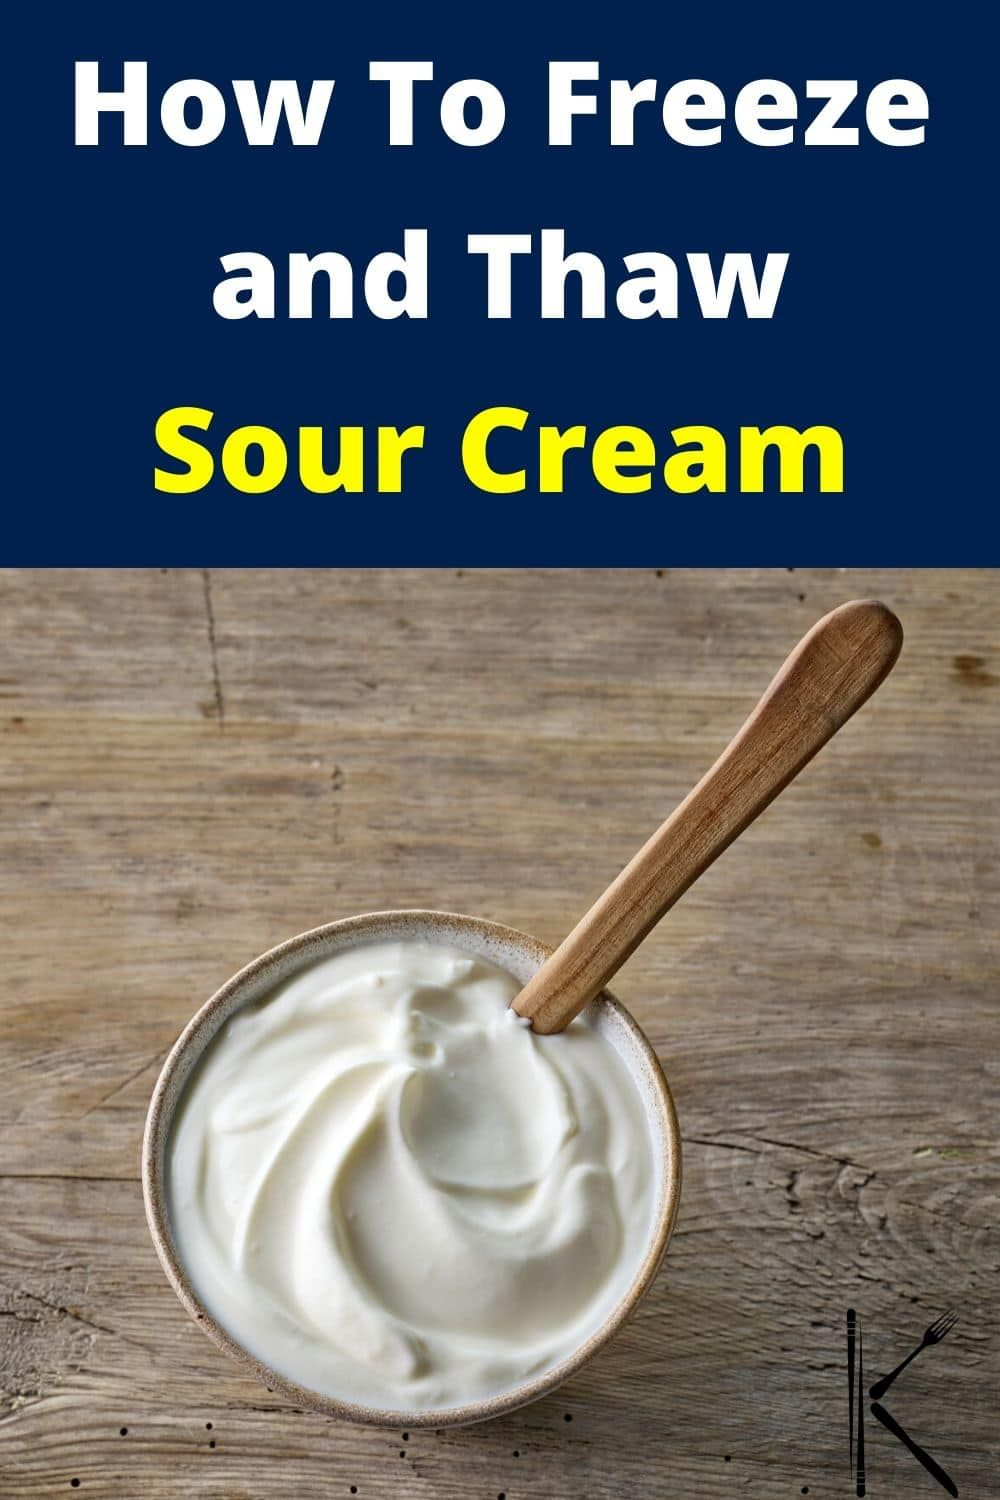 Can You Freeze Sour Cream In 2020 Sour Cream Food Wastage Frozen